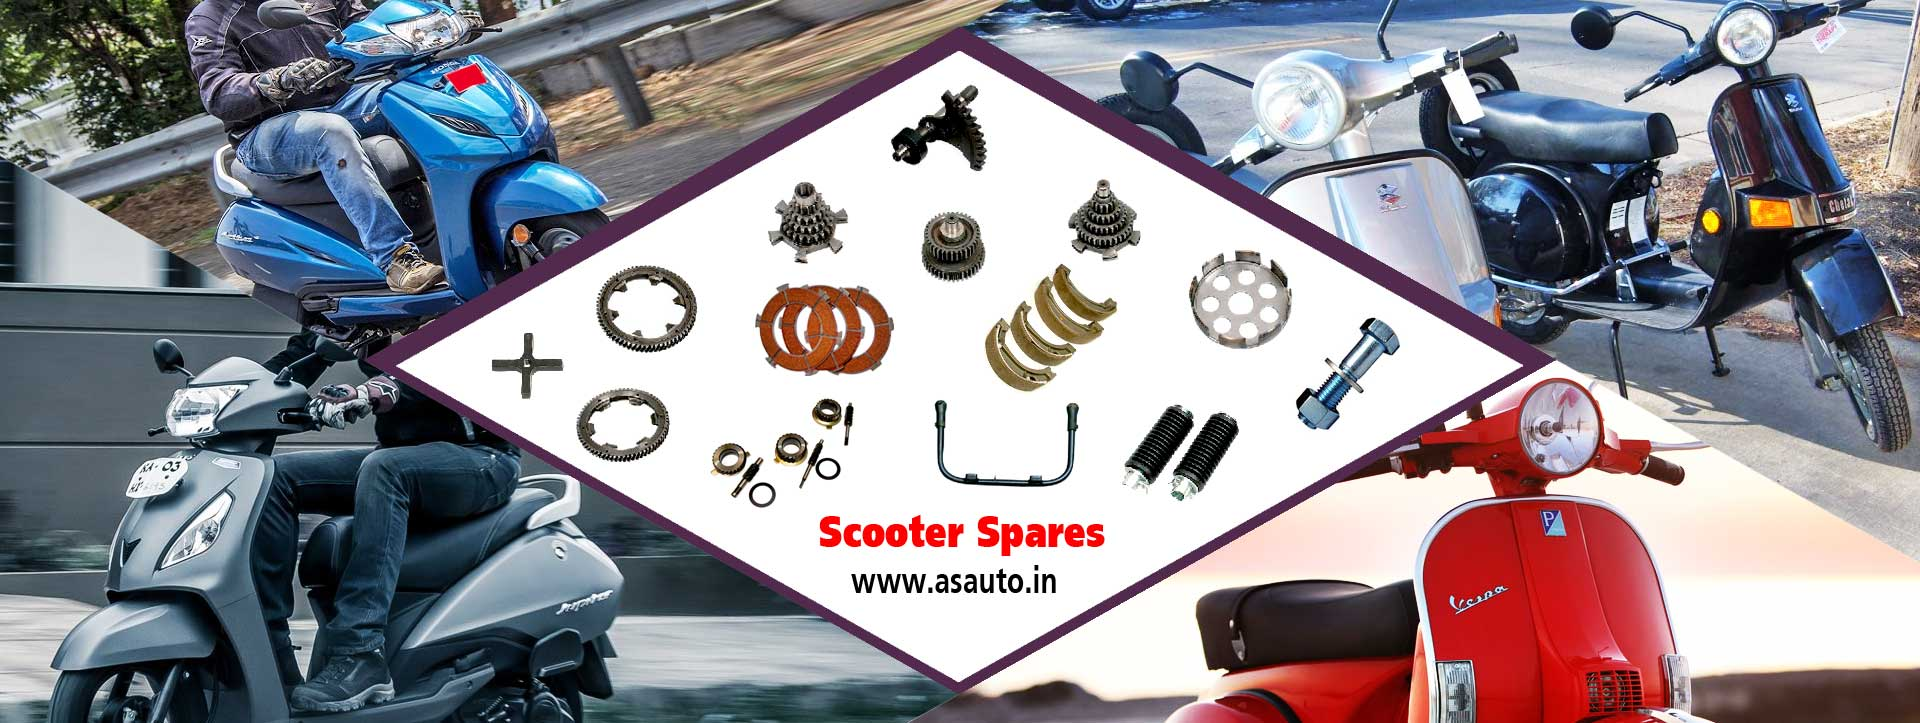 scooter auto parts 4 stroke scooter spare parts manufacturers suppliers distributors in india punjab ludhiana